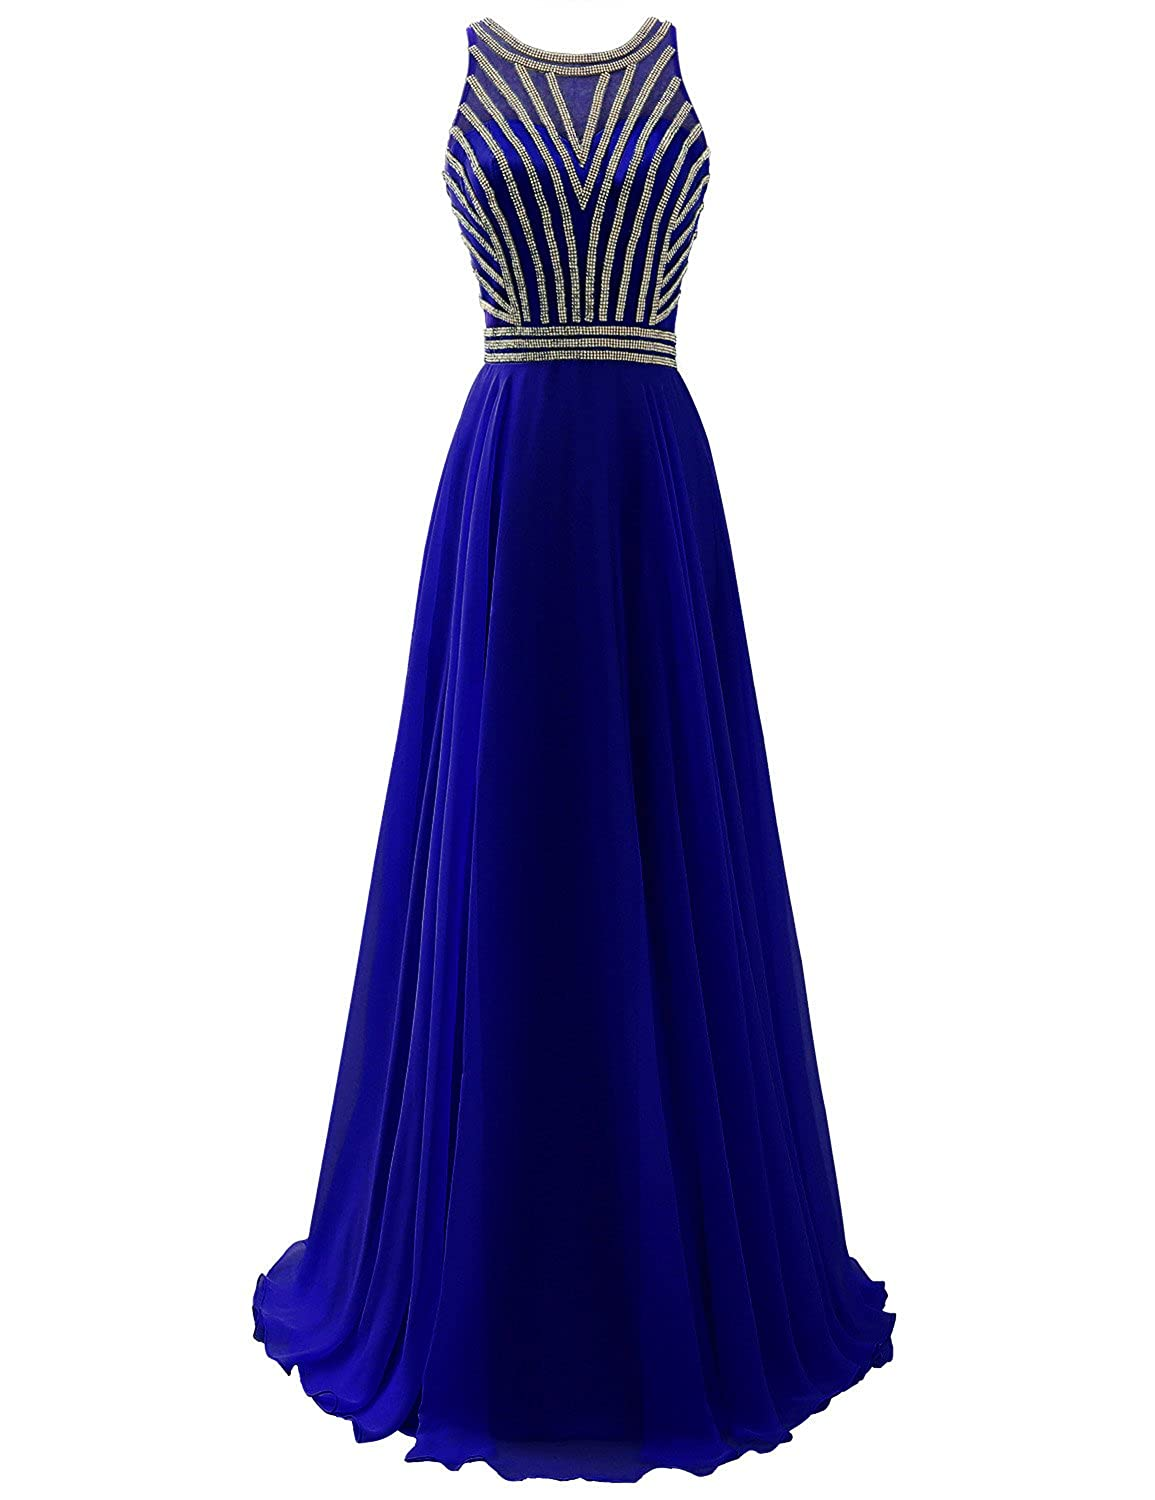 Sarahbridal Women's Prom Dresses Long Formal Evening Party Ball Gowns SD005